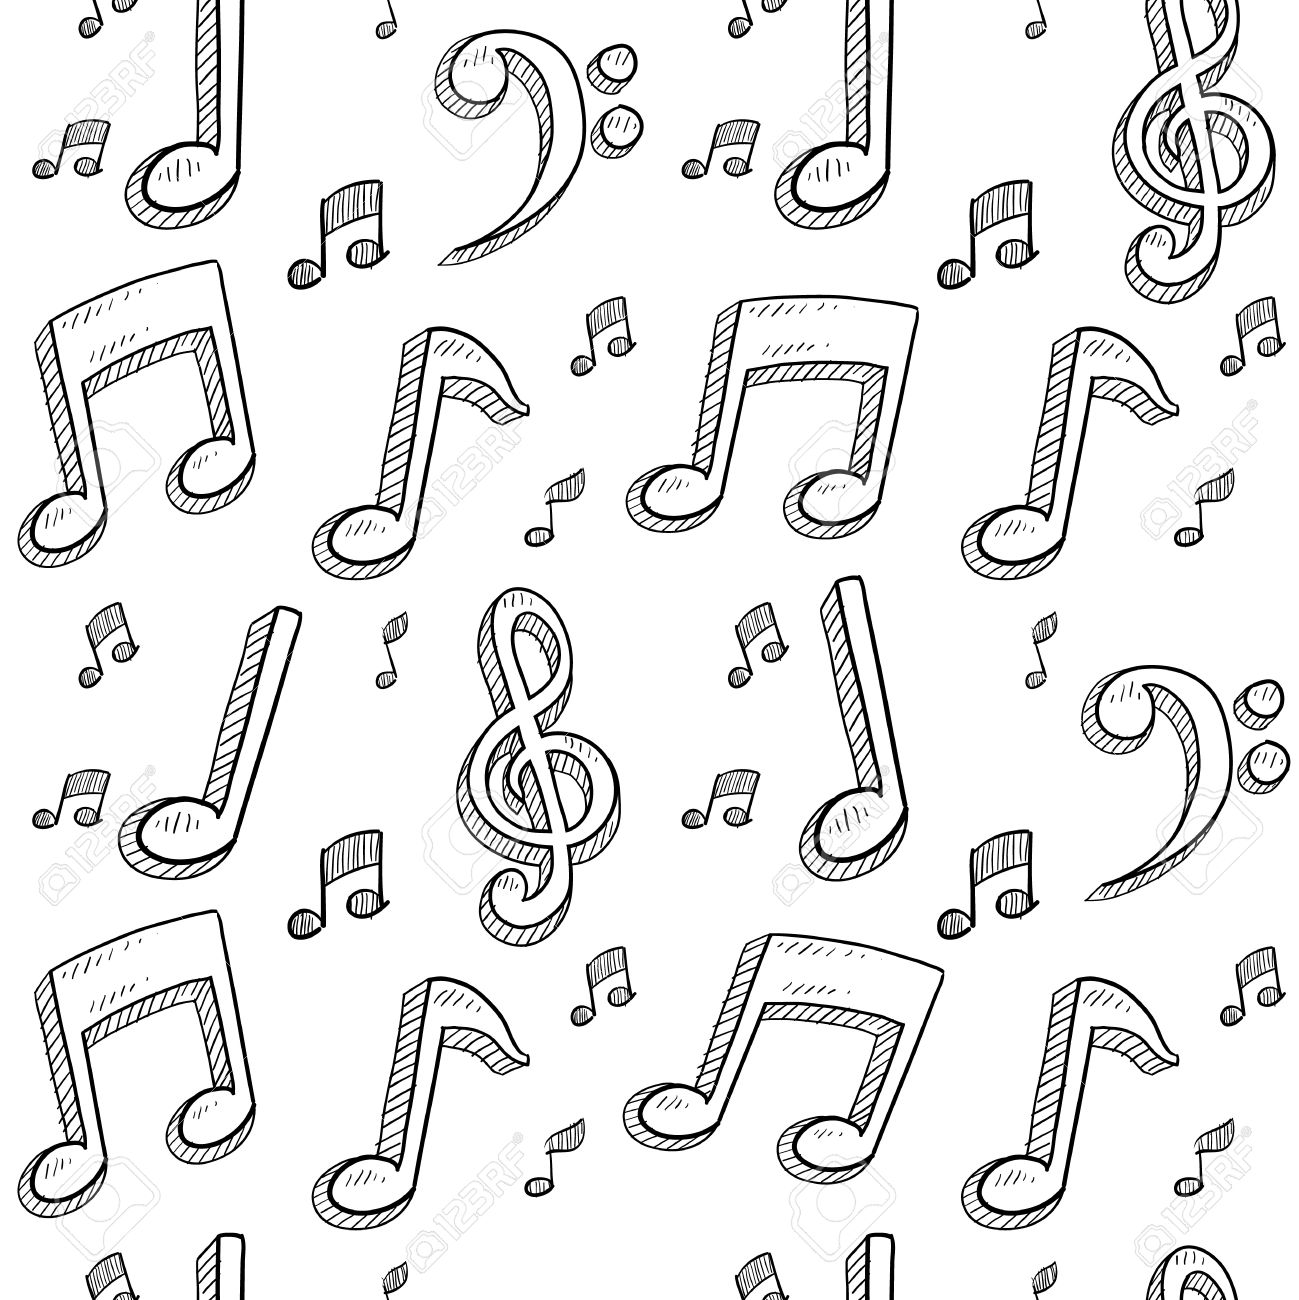 Doodle style musical notes seamless background pattern sketch in vector format Stock Photo - 14419982